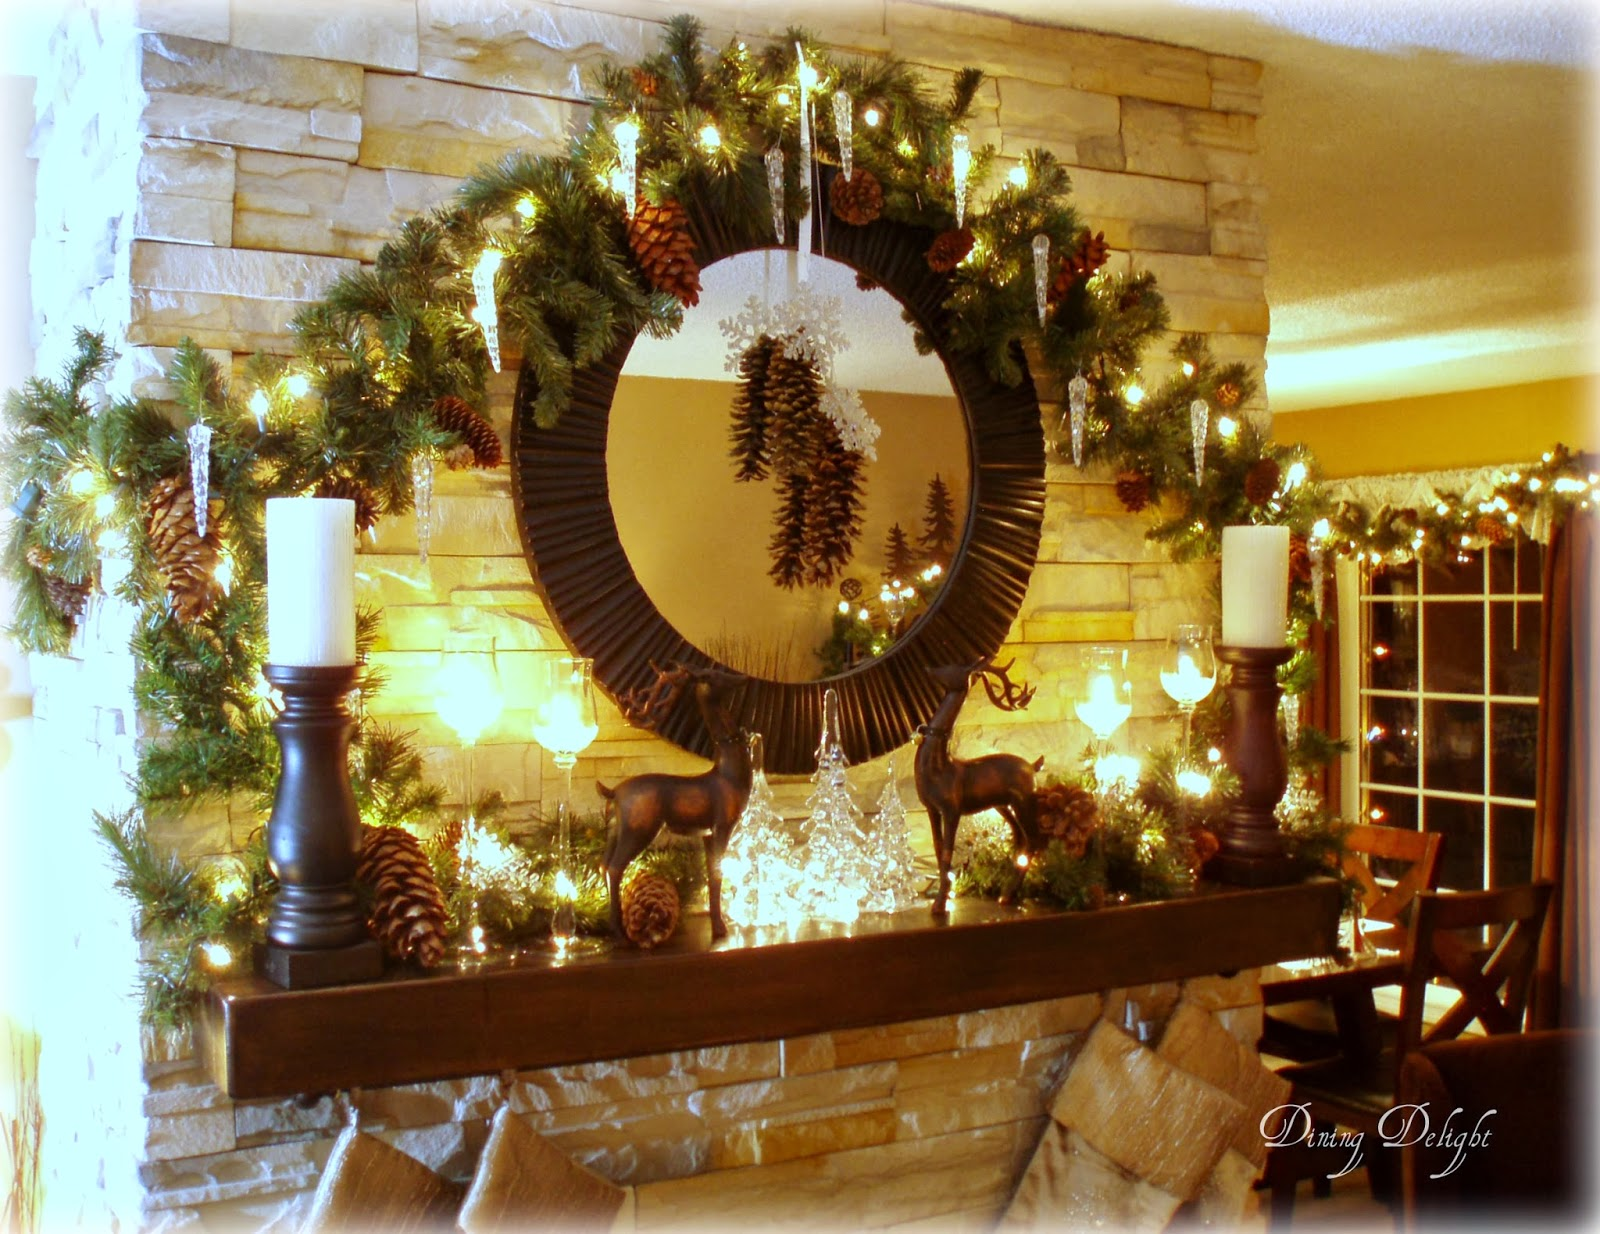 Dining Delight: Rustic-Natural Christmas Mantel